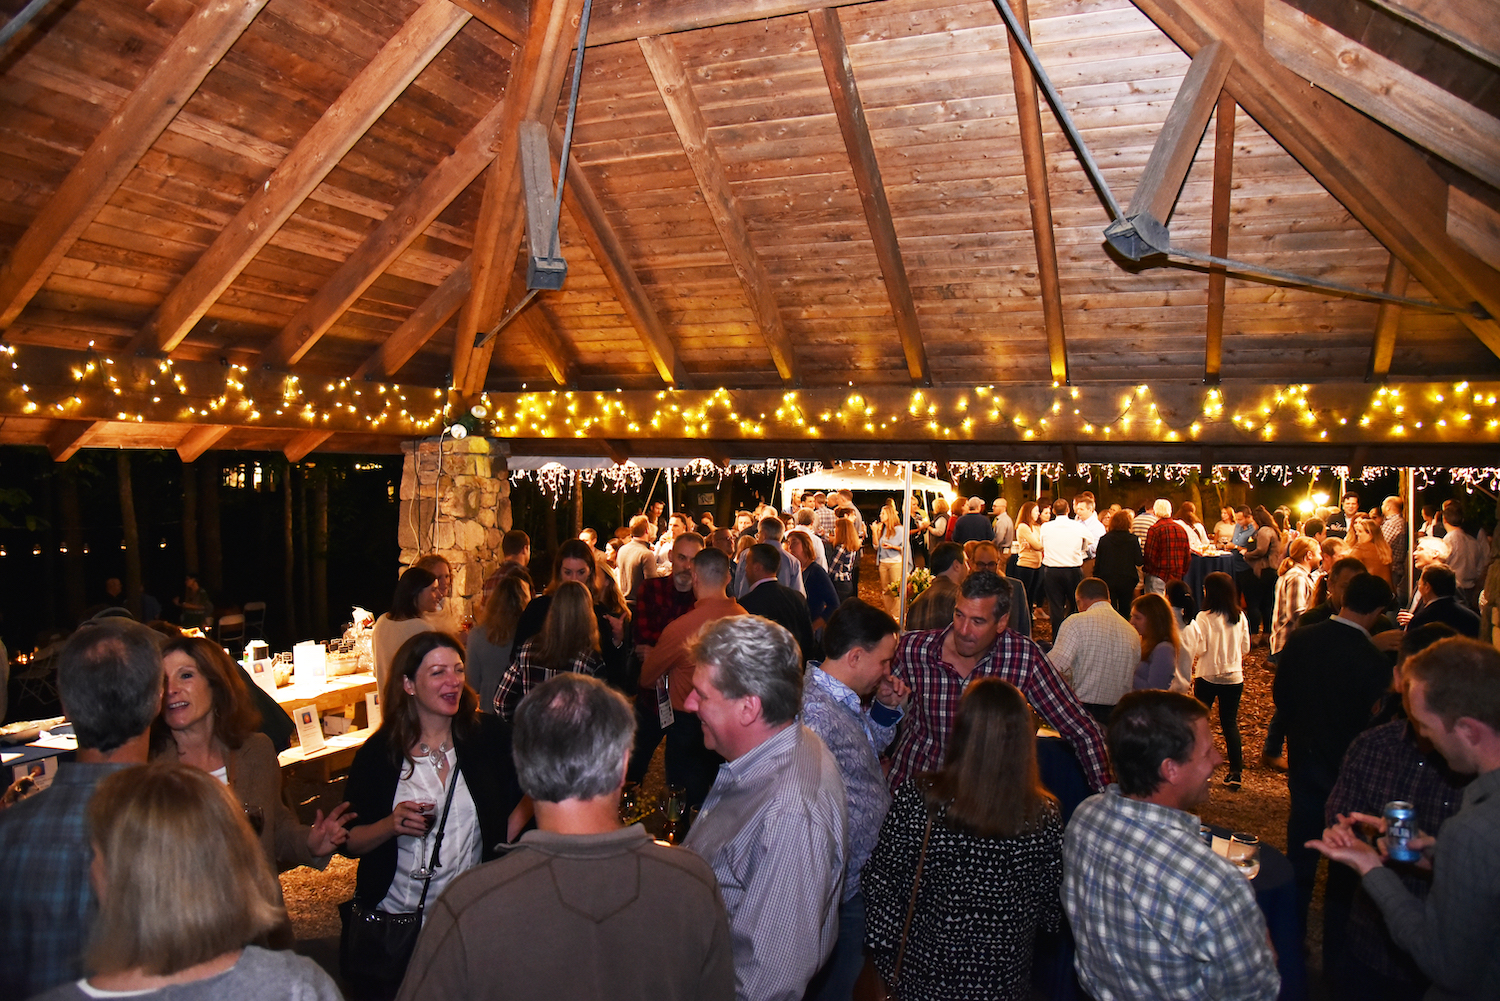 Woodcock Nature Center Plans for Another Sold-Out Under the Harvest Moon Benefit Event